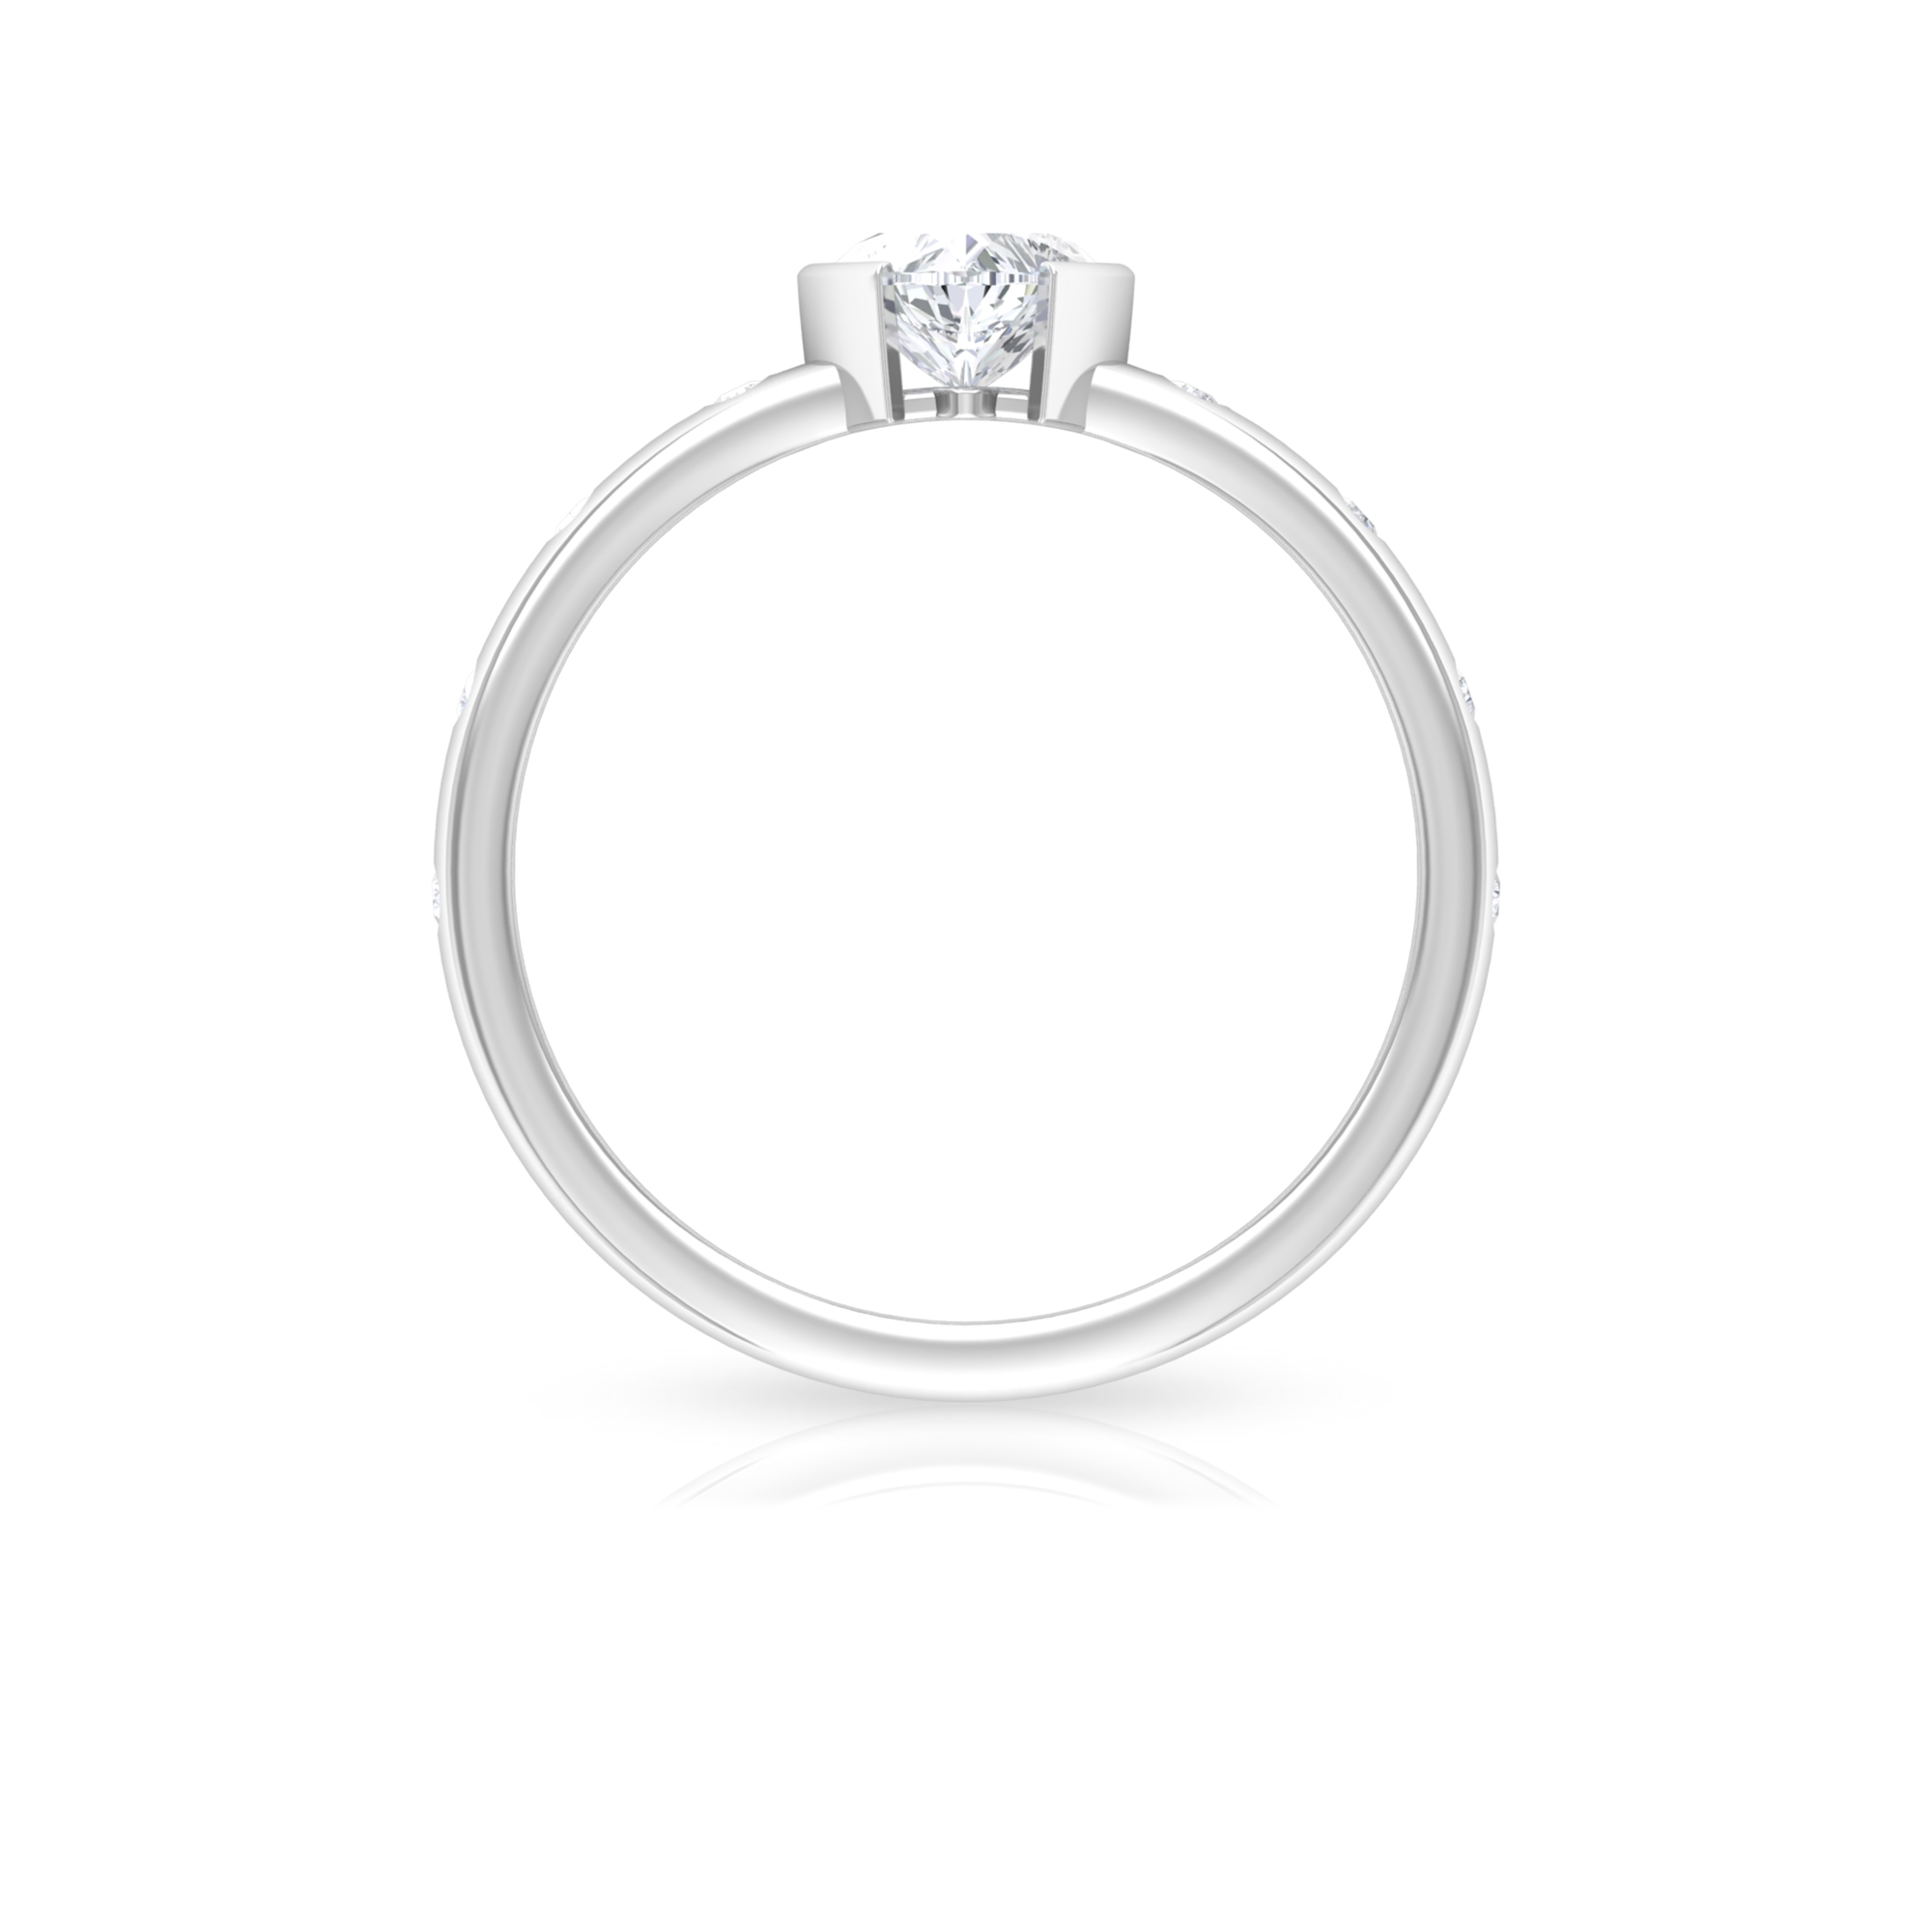 1/2 CT Heart Shape Diamond Solitaire Ring in Half Bezel Setting with Sleek Accent